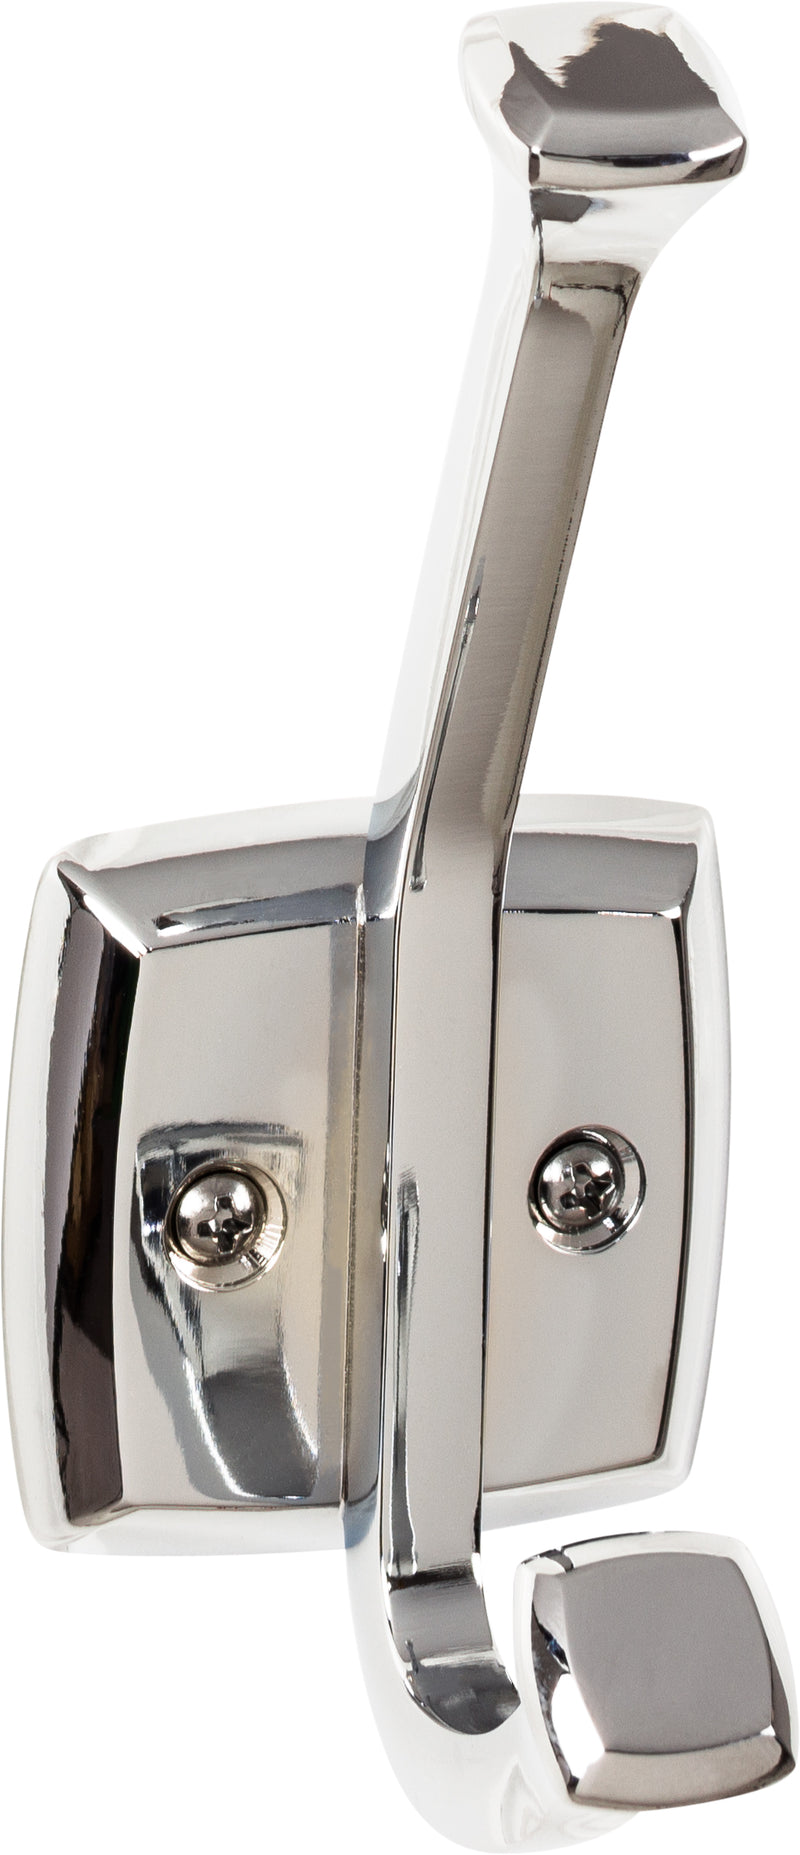 Top Knobs Juliet Hook 4 3/4 Inch - Stellar Hardware and Bath